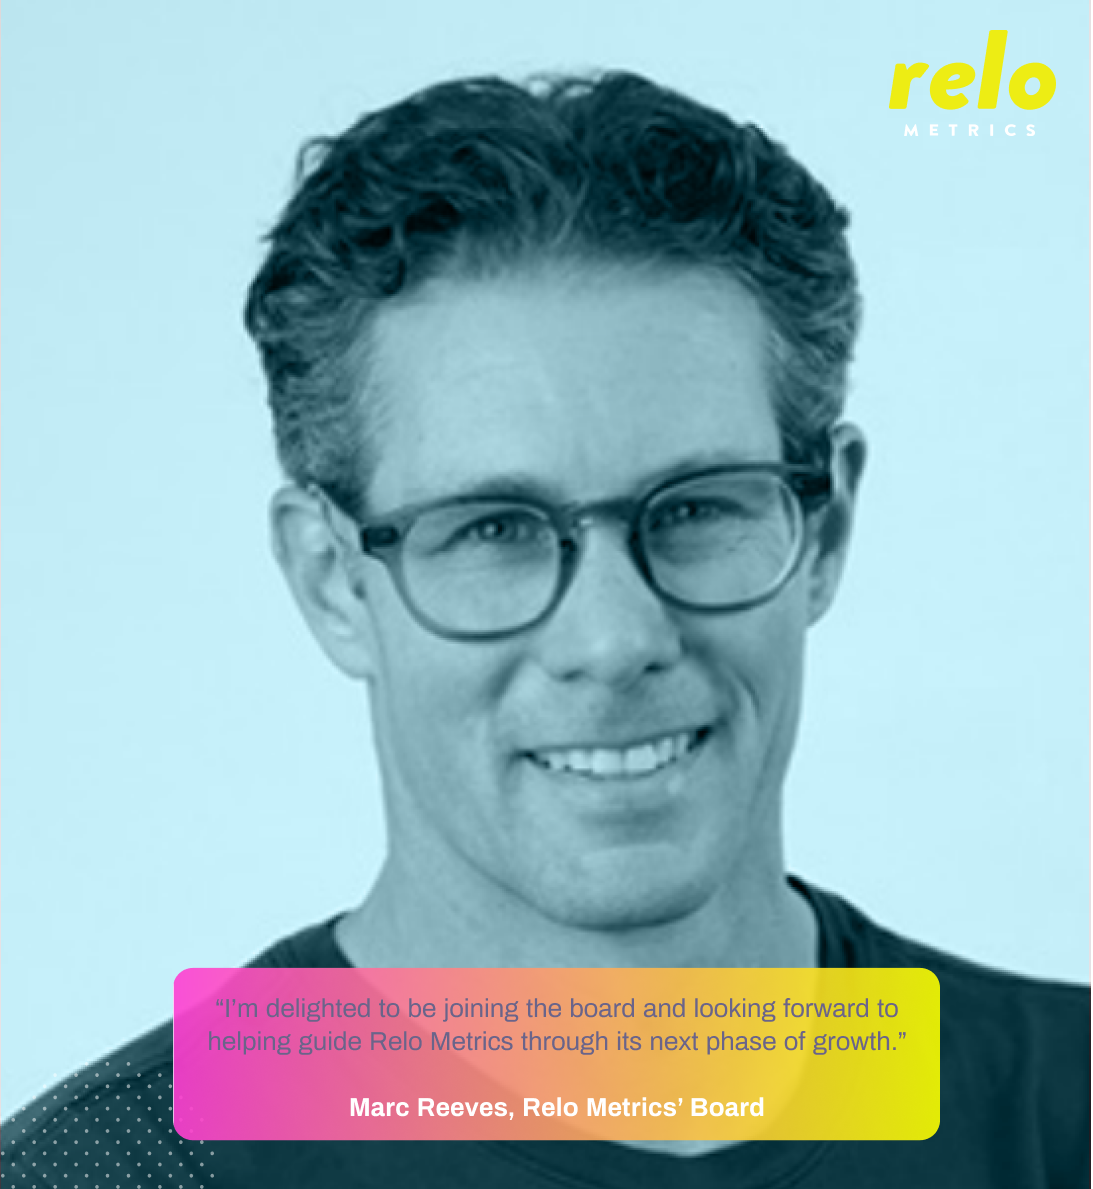 Marc Reeves, Former Nike, NFL and IMG executive, joins Relo Metrics' Board